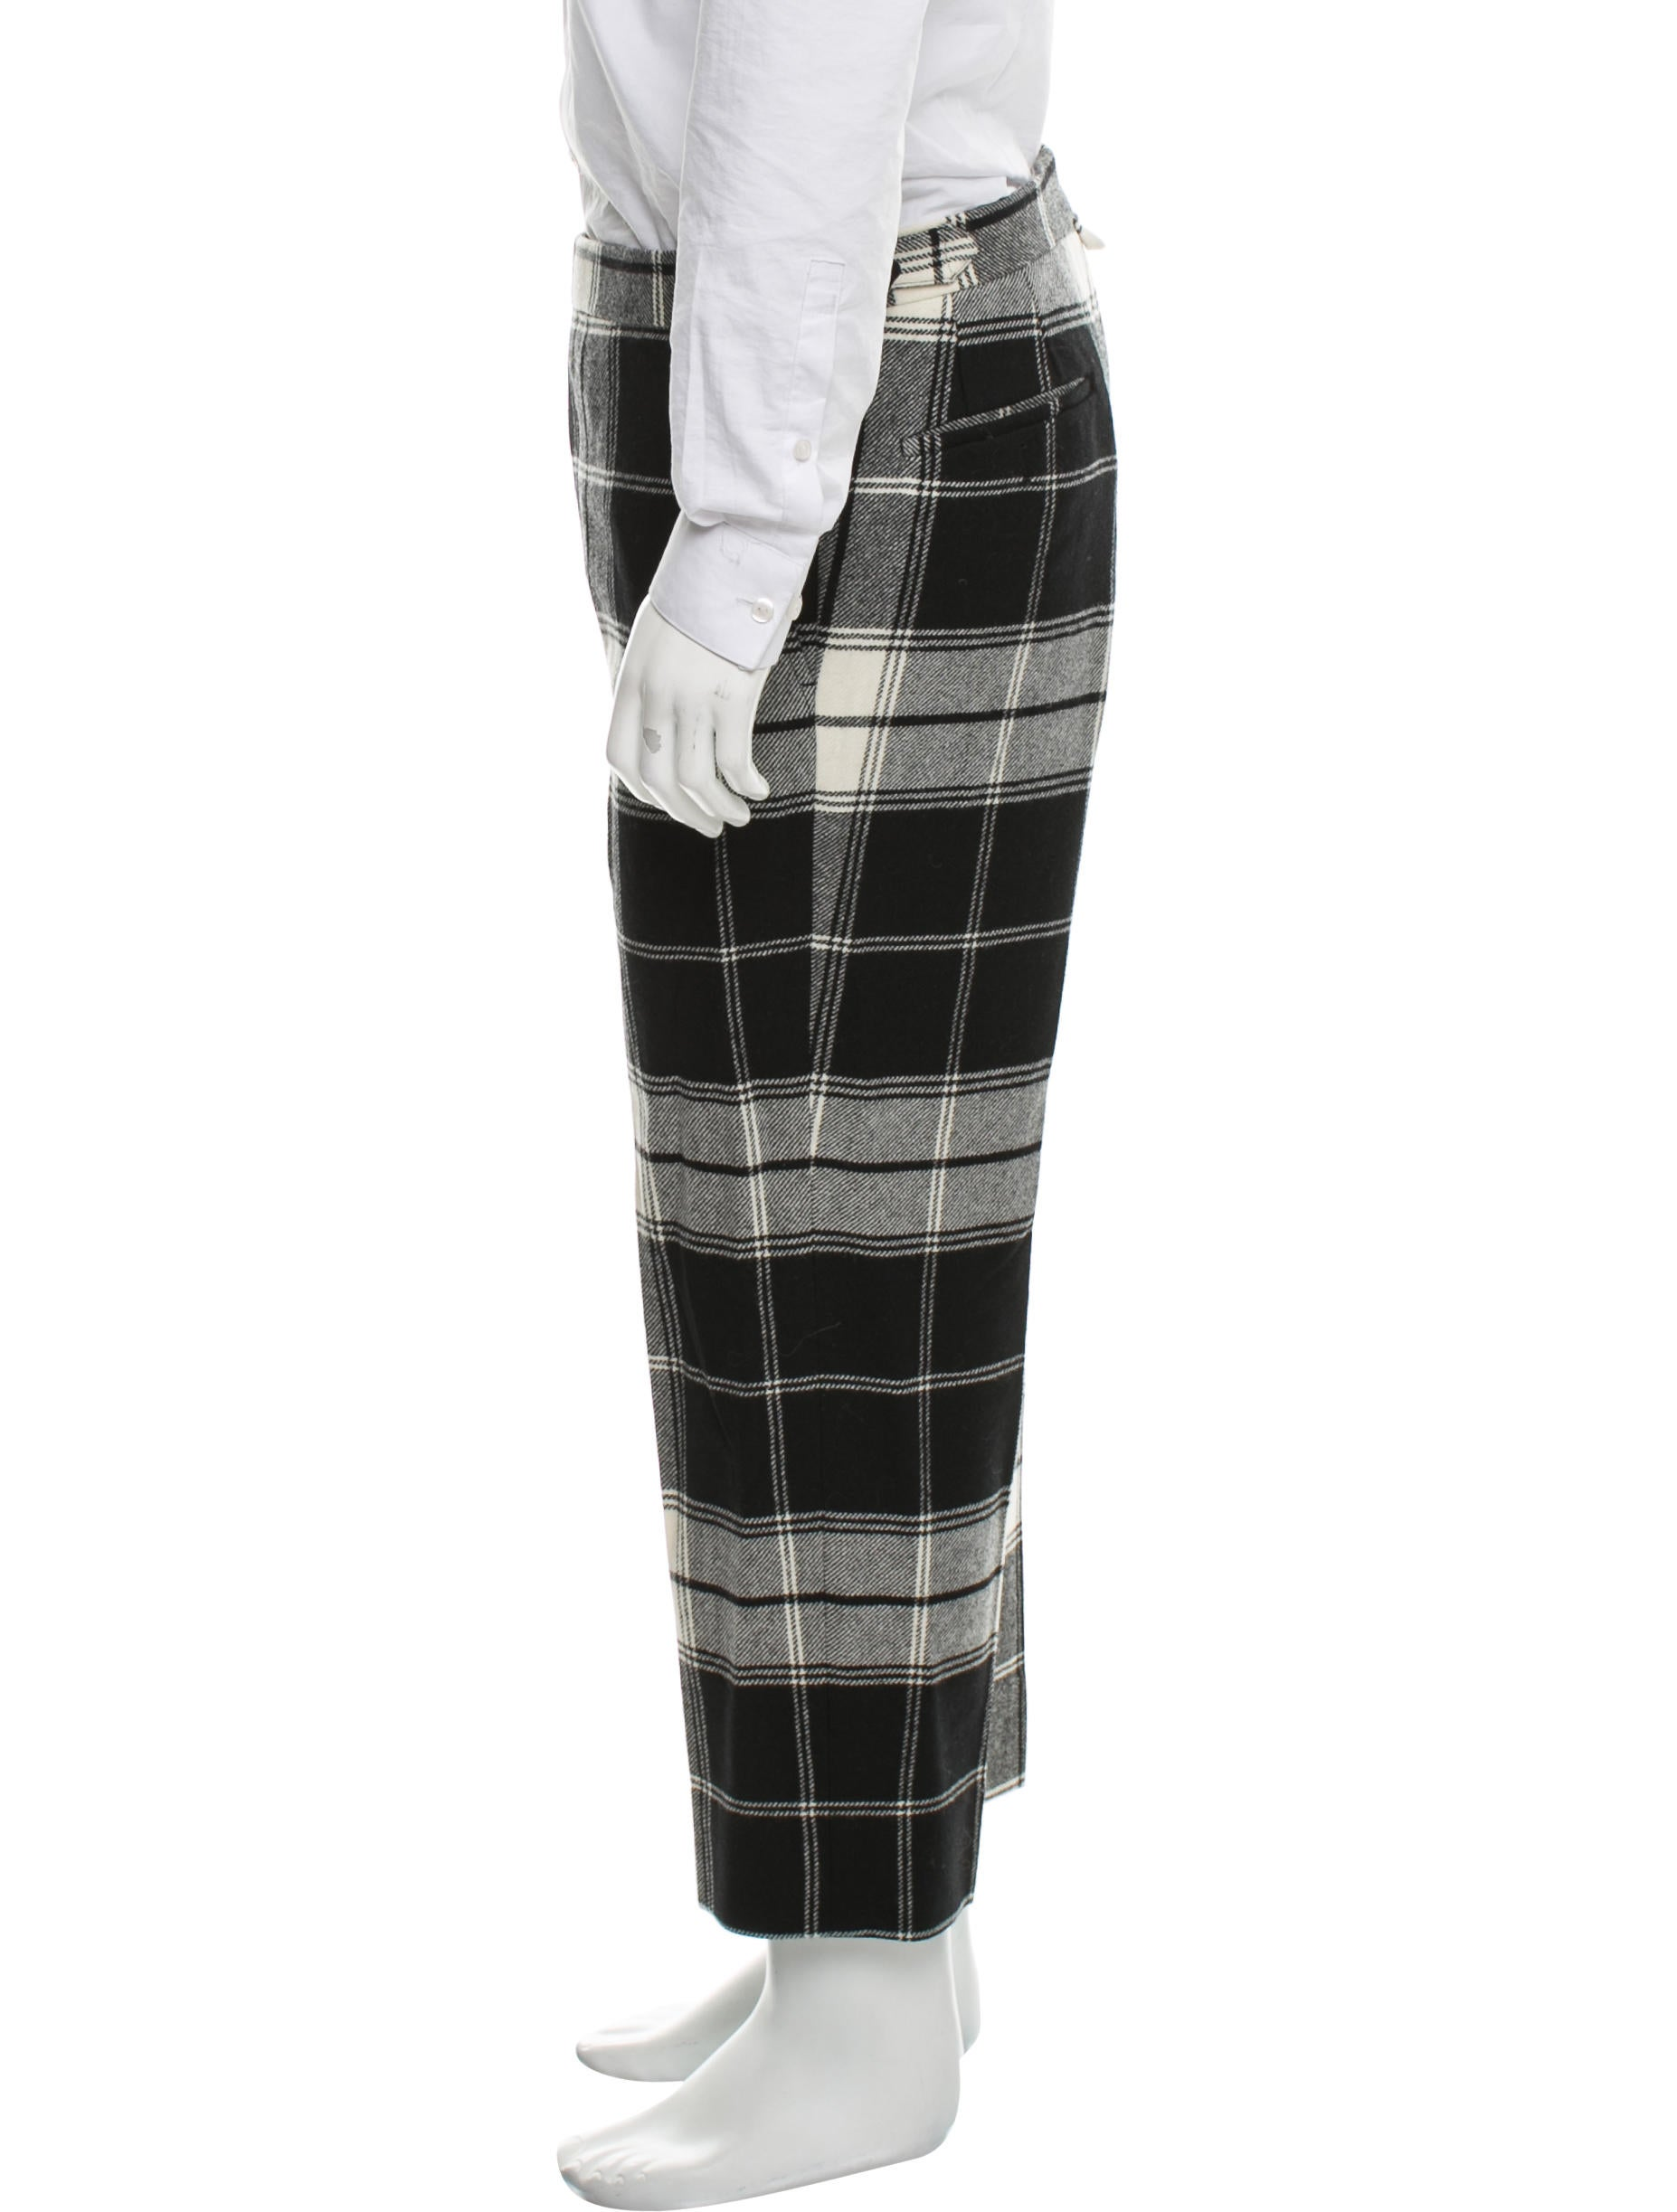 Sep 27, · Rock out in these stretchy, super skinny red and black plaid pants from Blackheart. They have patches sewn haphazardly onto the legs and feature multiple zipper details and a D-ring accented strap. The mid rise pants have 2 faux front pockets, two back pockets, a /5(15).